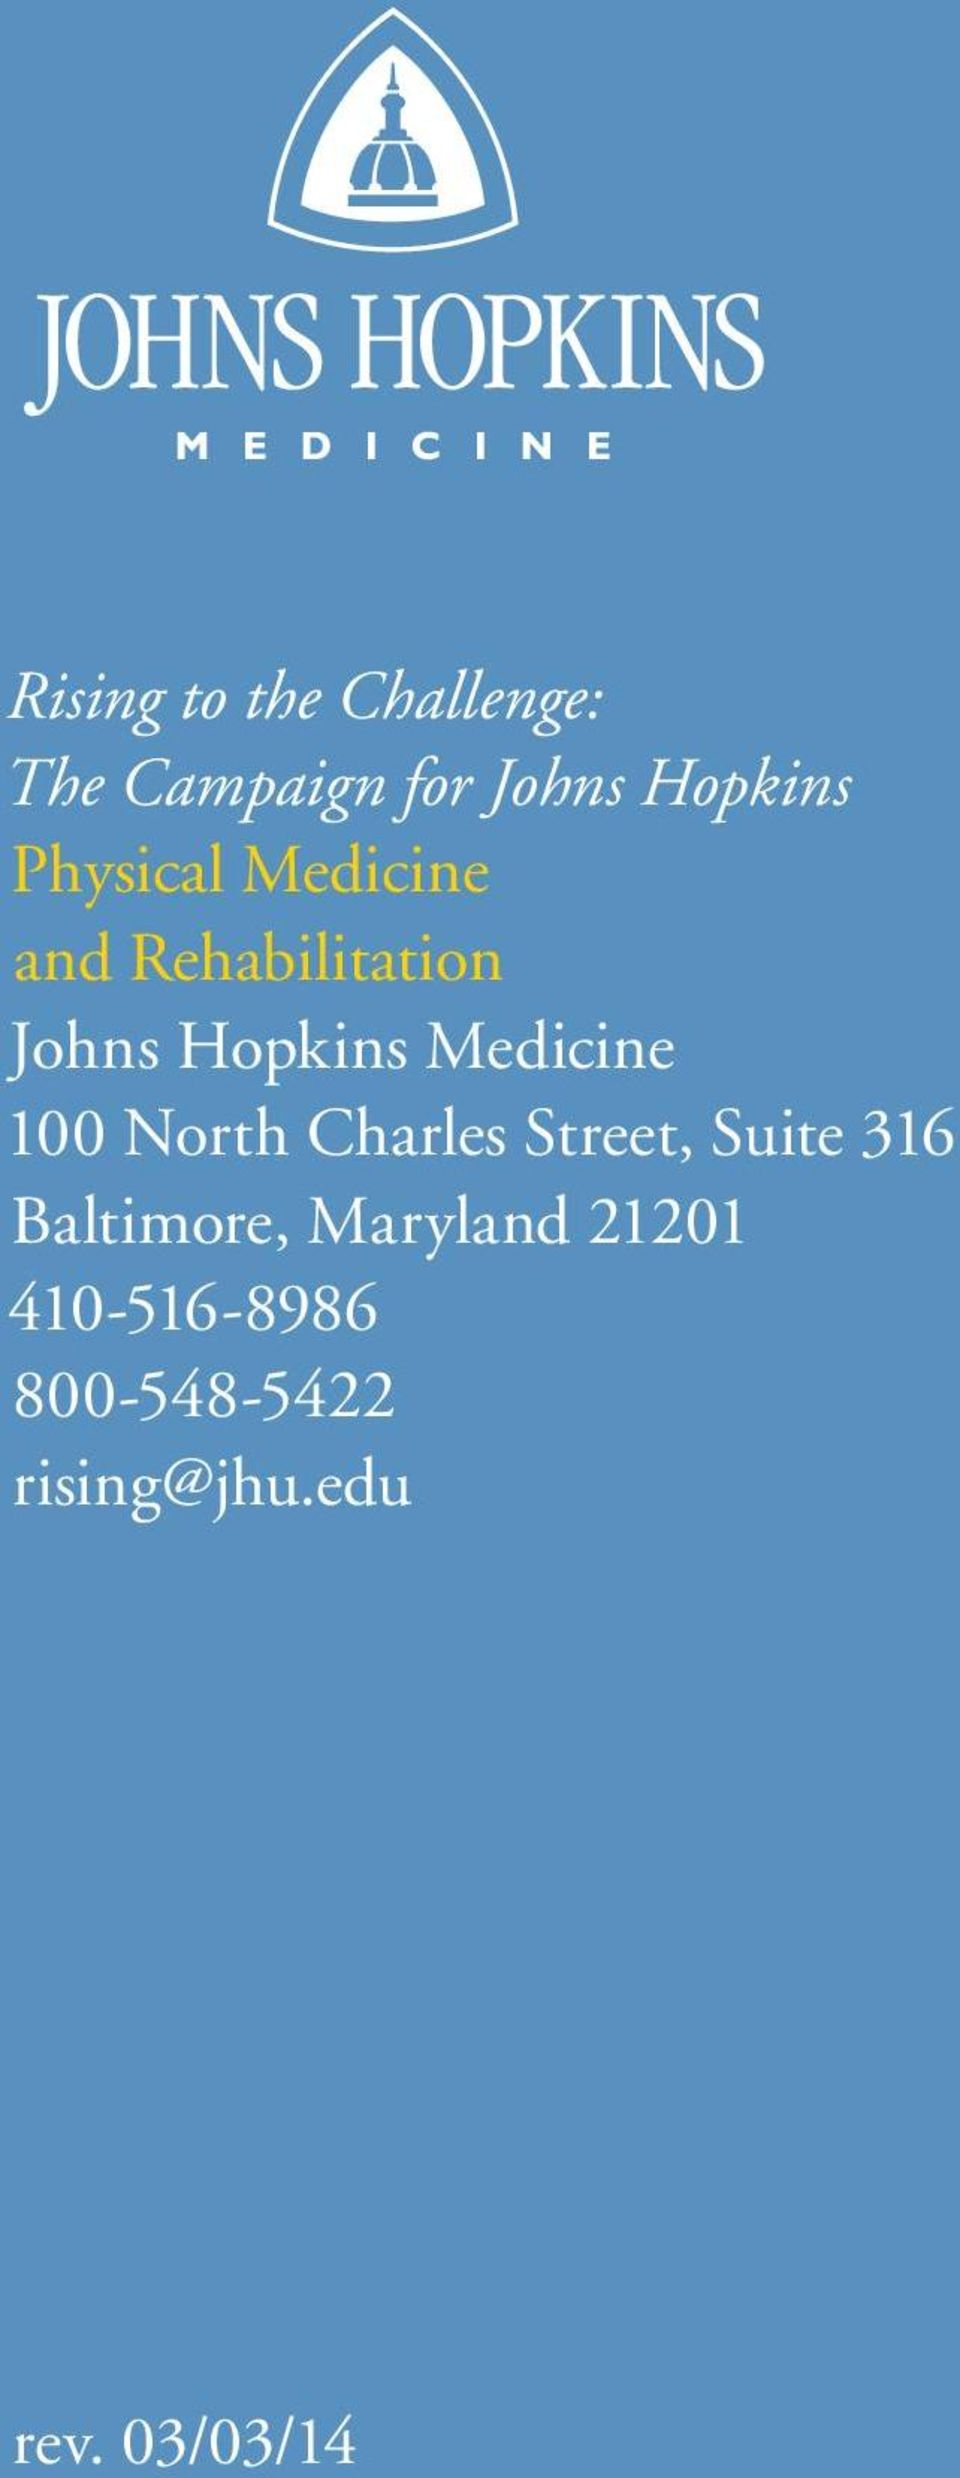 Medicine 100 North Charles Street, Suite 316 Baltimore,